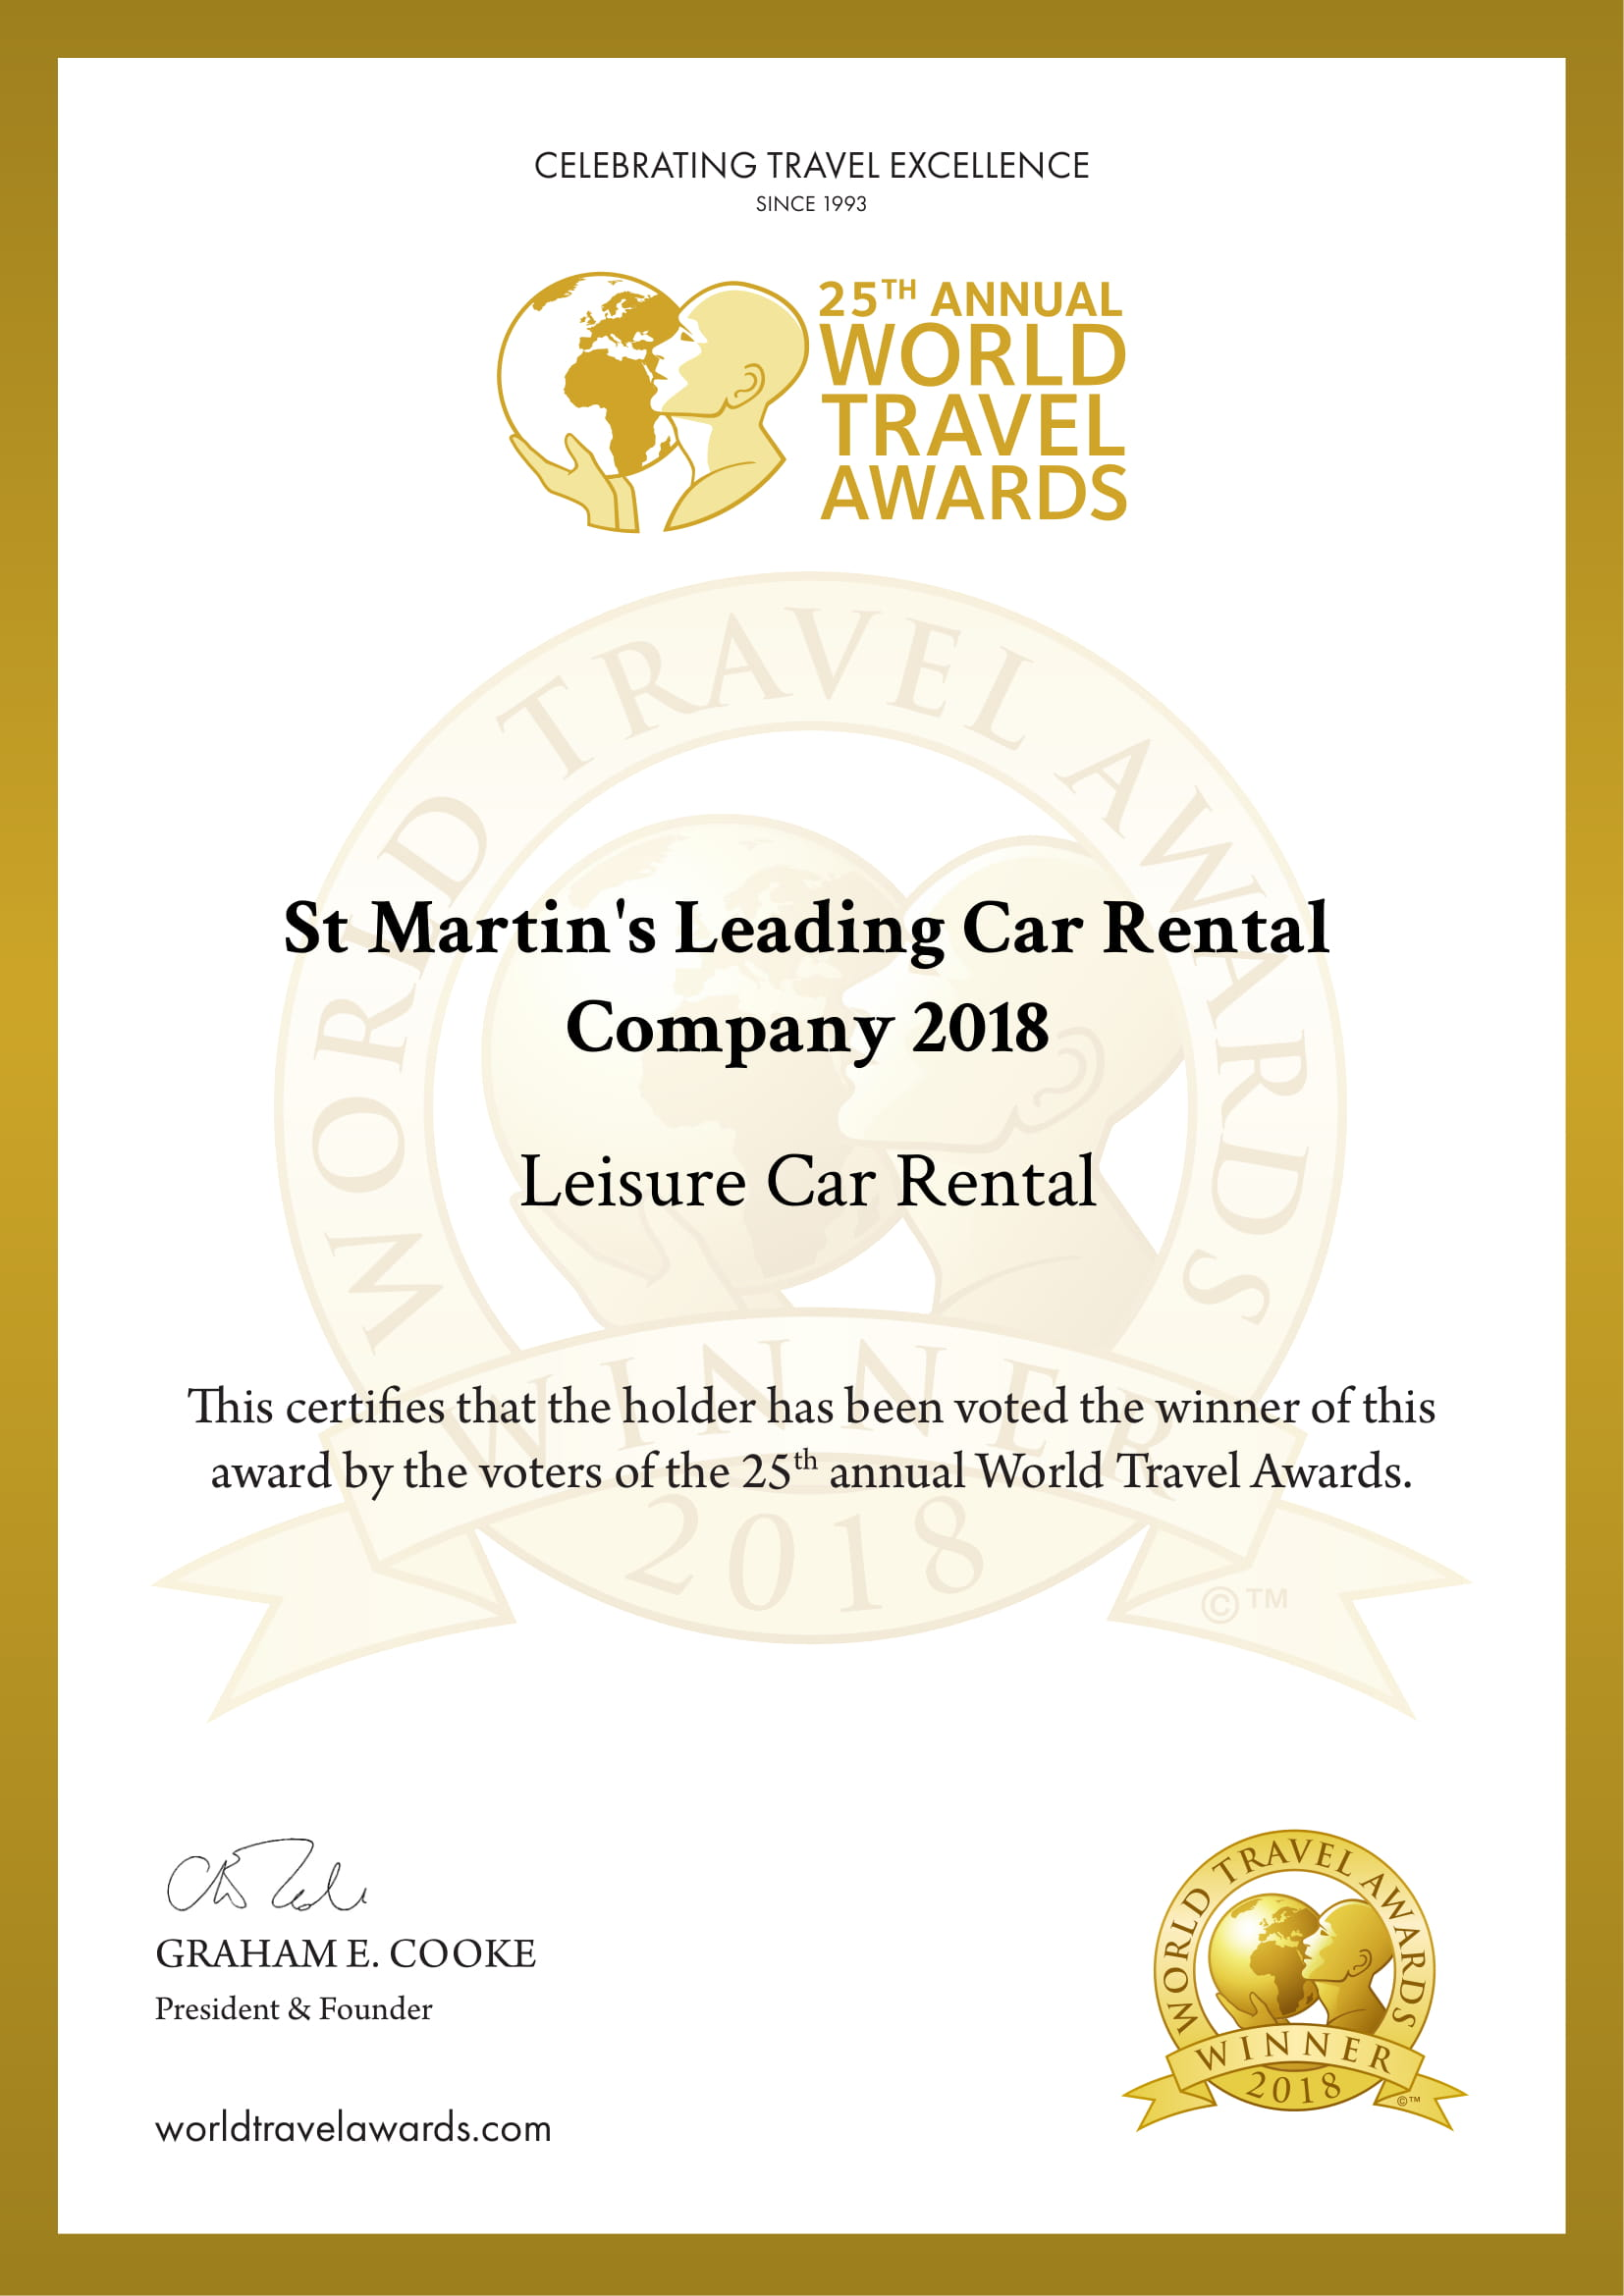 st-martins-leading-car-rental-company-2018-winner-certificate-leisure-car-rental-1